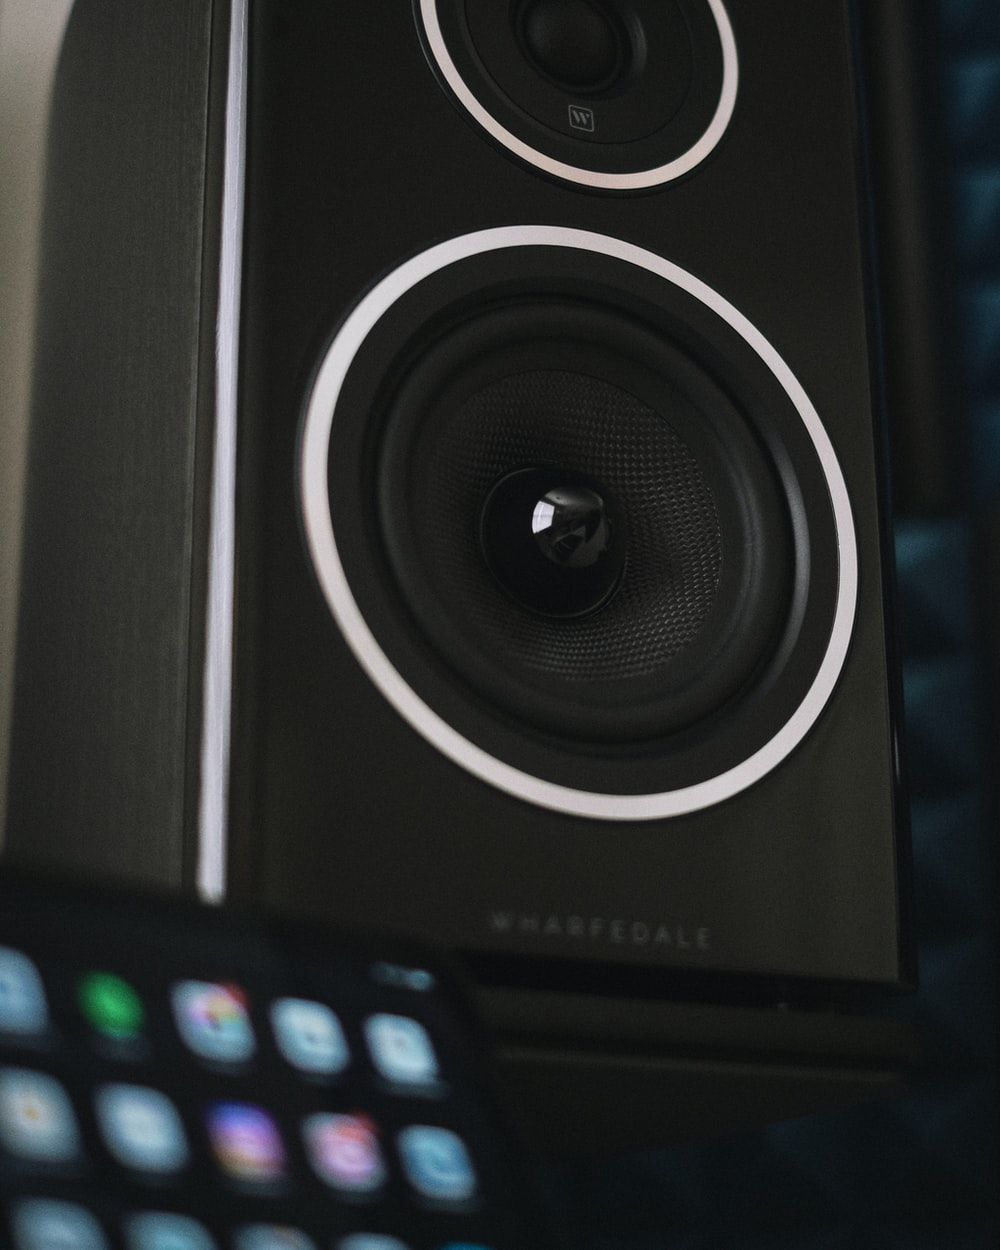 black and gray speaker with blue light